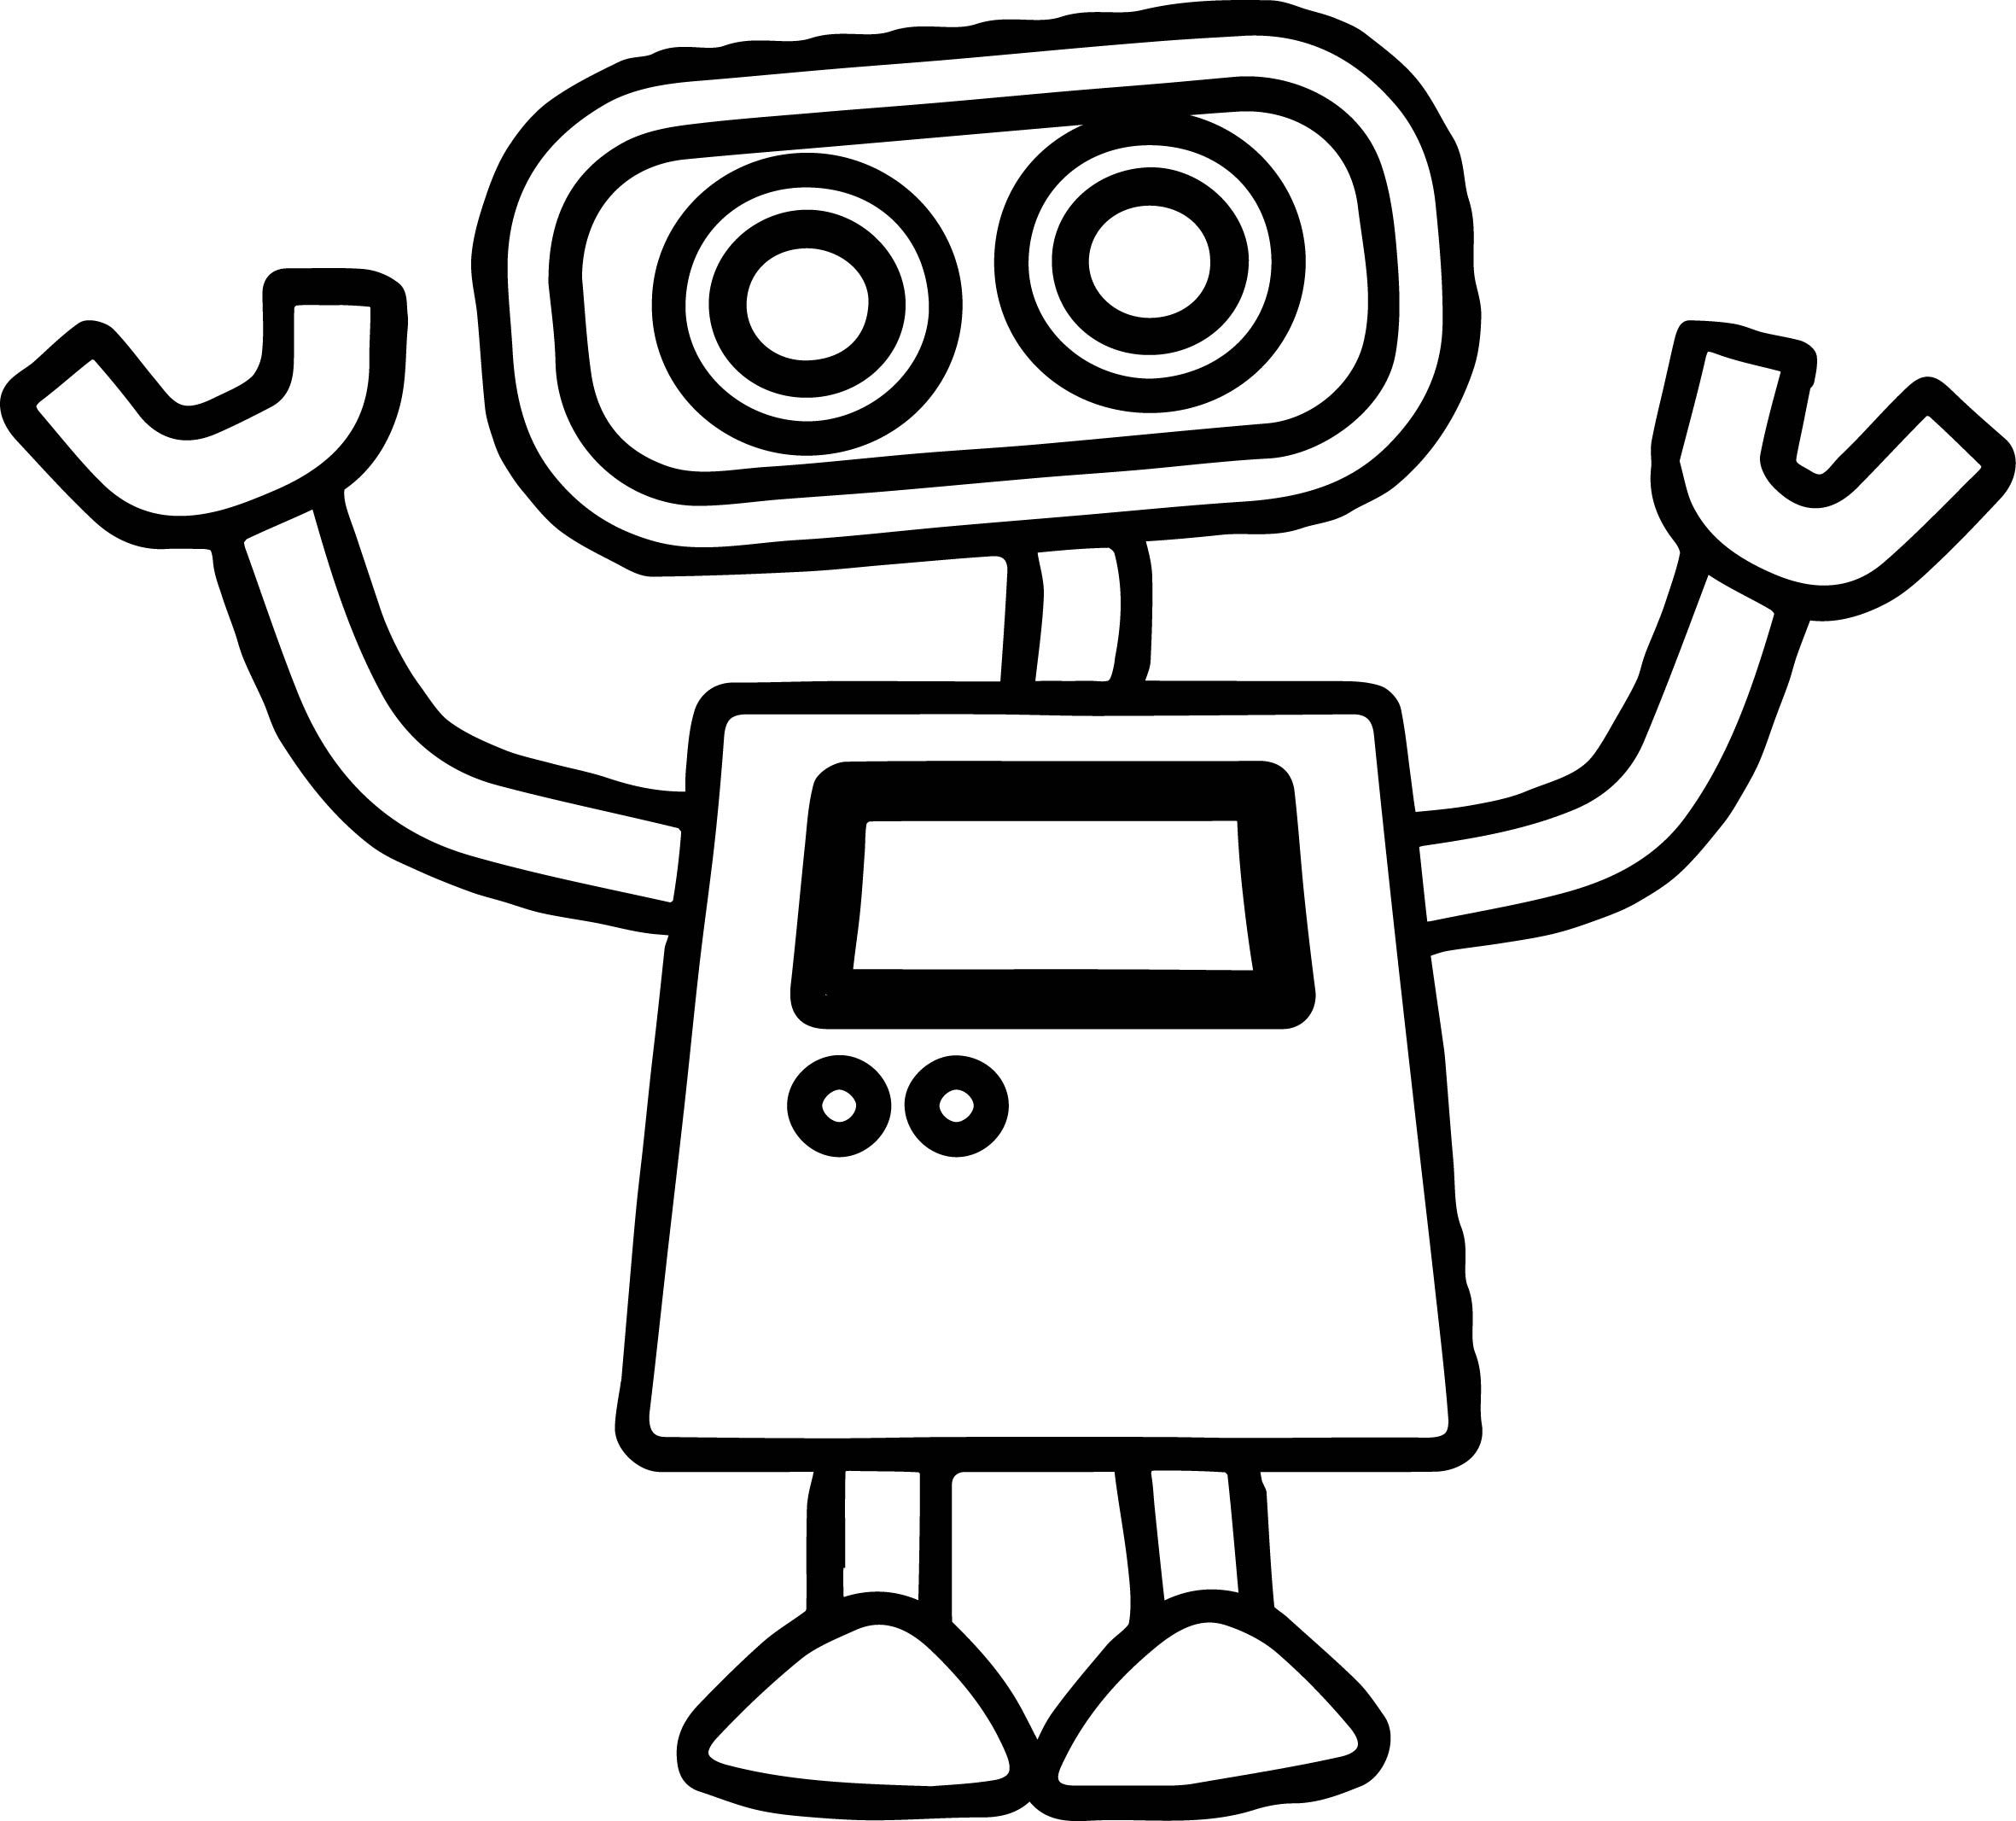 Nice Basic Cute Robot Coloring Page Easy Coloring Pages Coloring Pages Coloring Pages For Boys